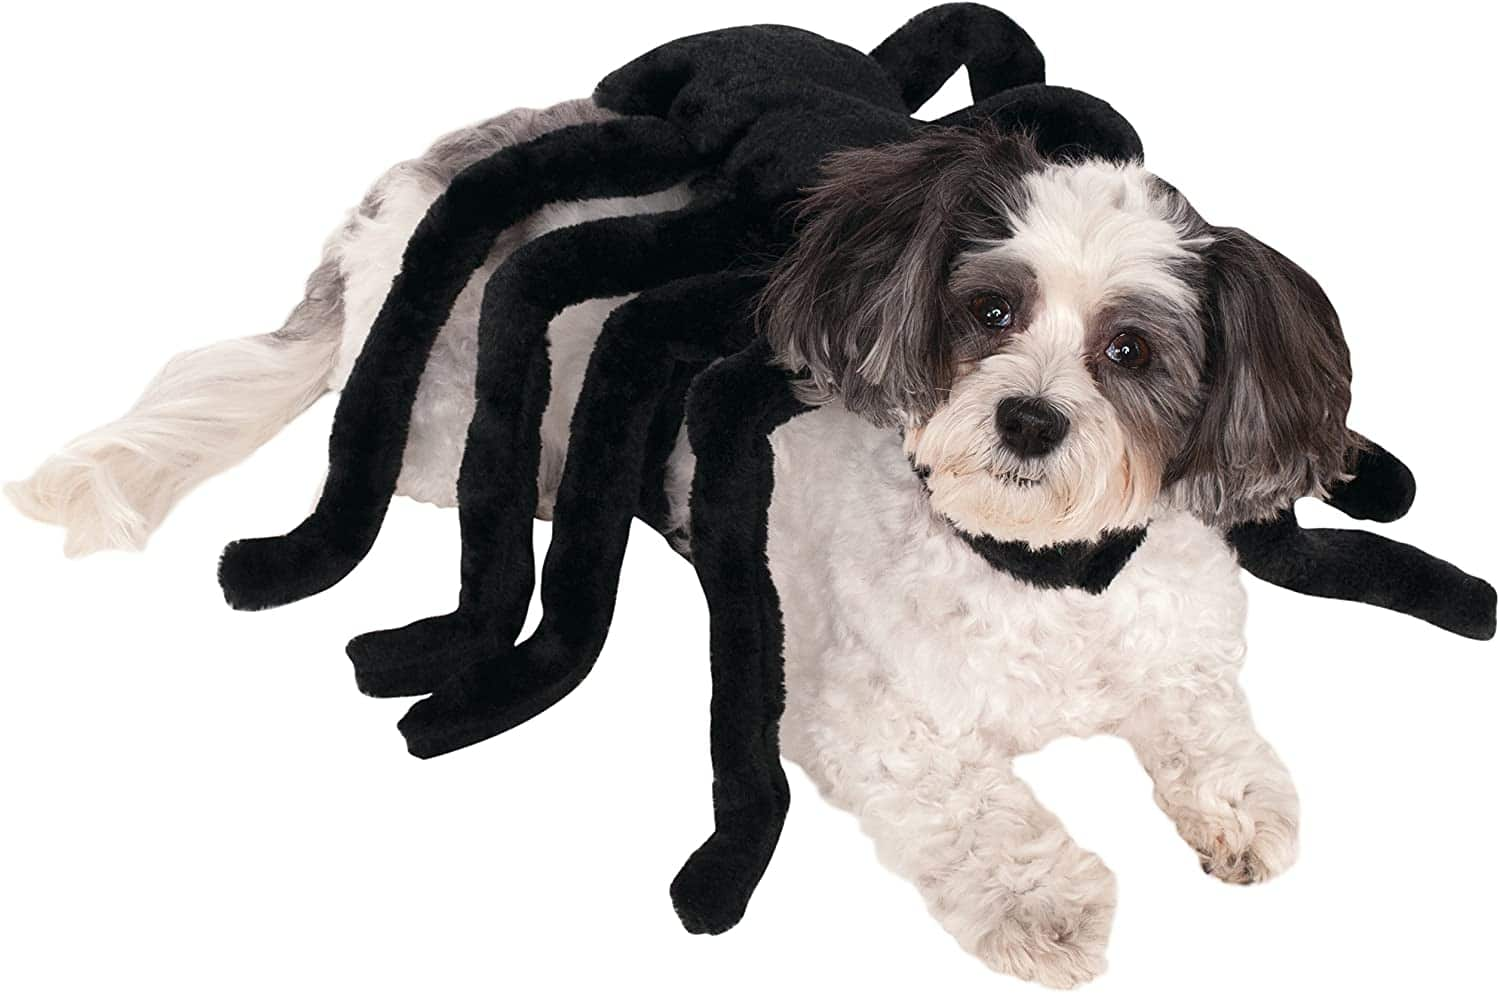 Rubie's  Pet Spider Harness Costume (Medium) $5.49 + Free Shipping w/ Prime or on $25+